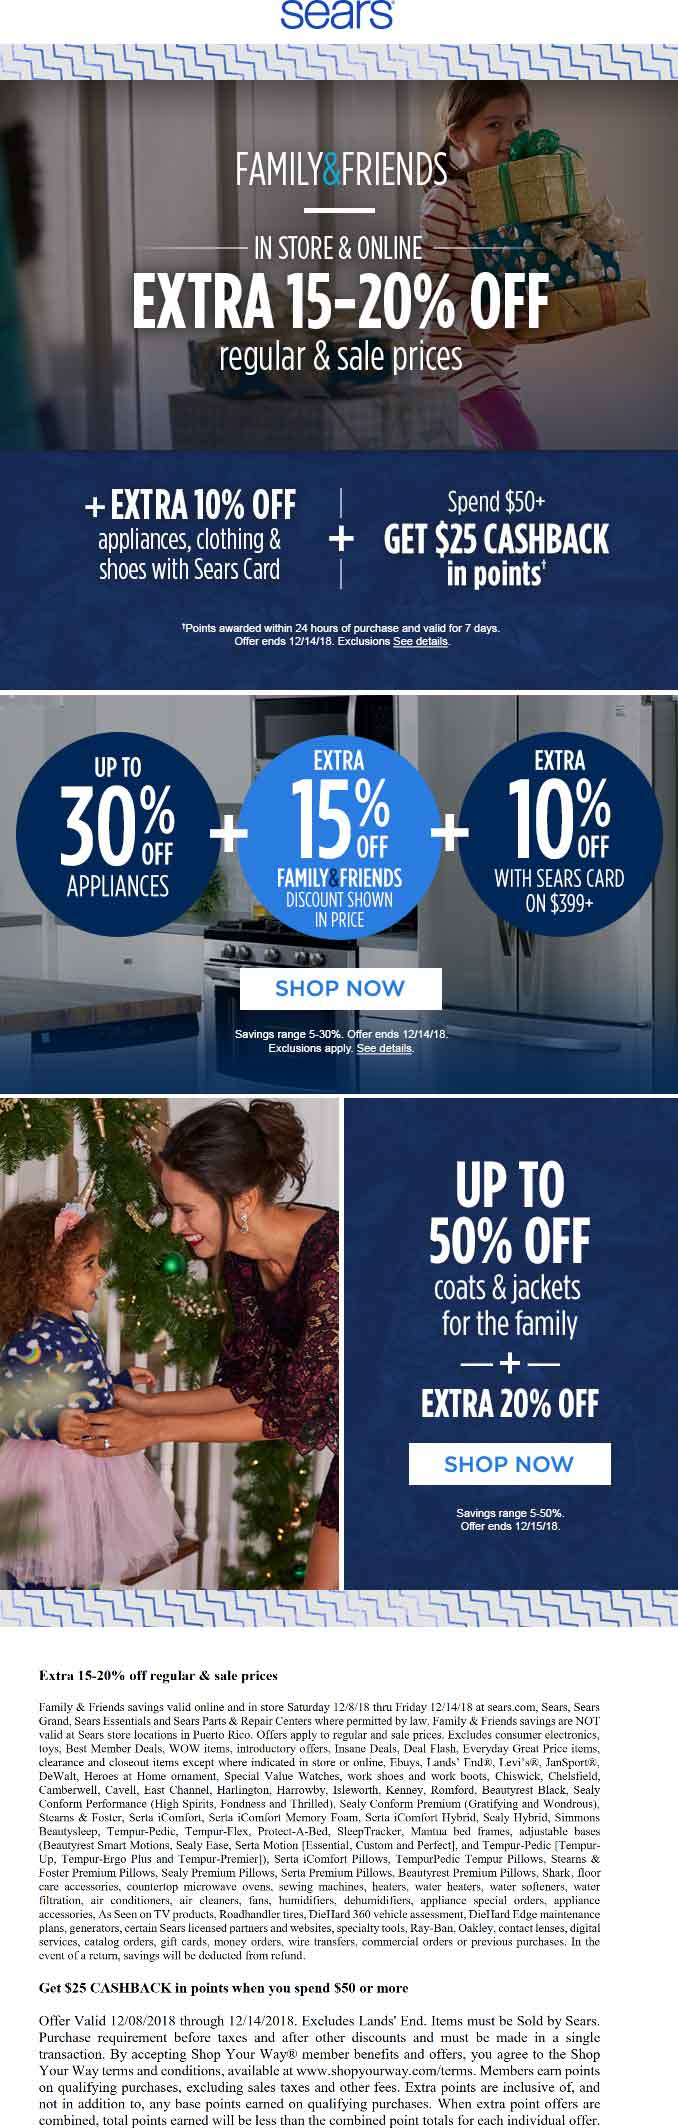 Sears Coupon July 2020 15-20% off at Sears, ditto online